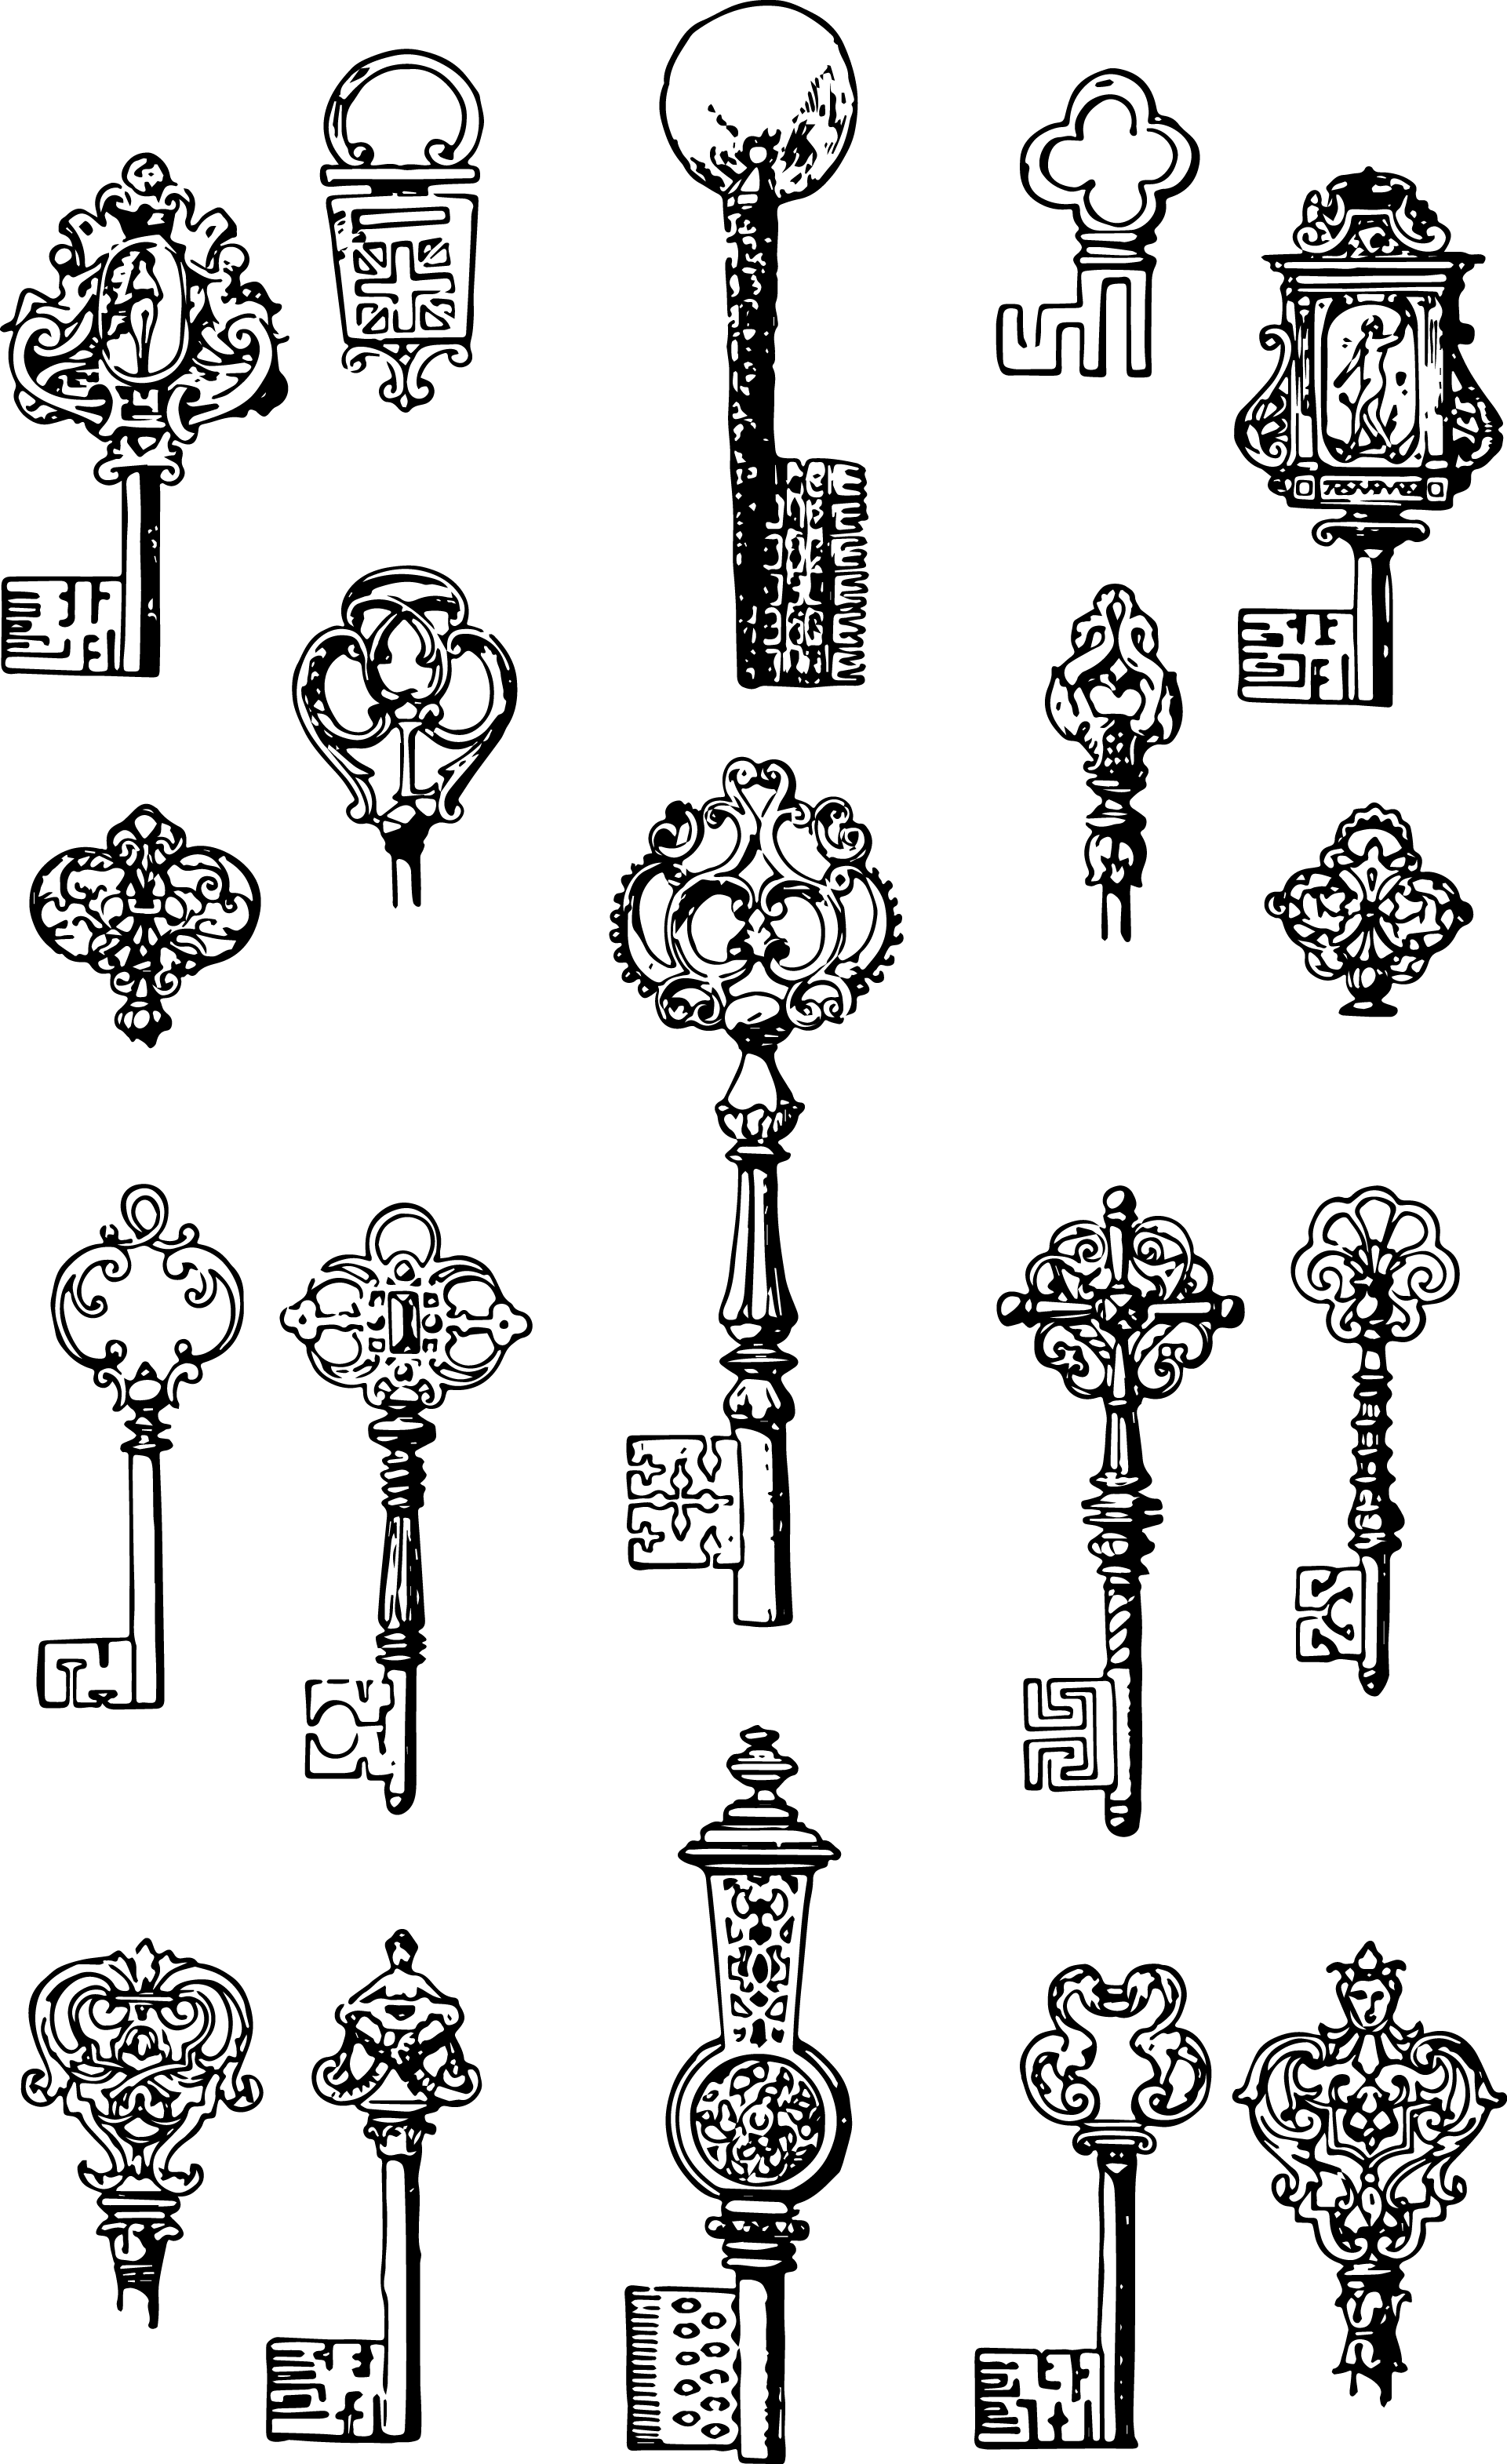 Vgosn vintage keys clip. Mall clipart interior vector